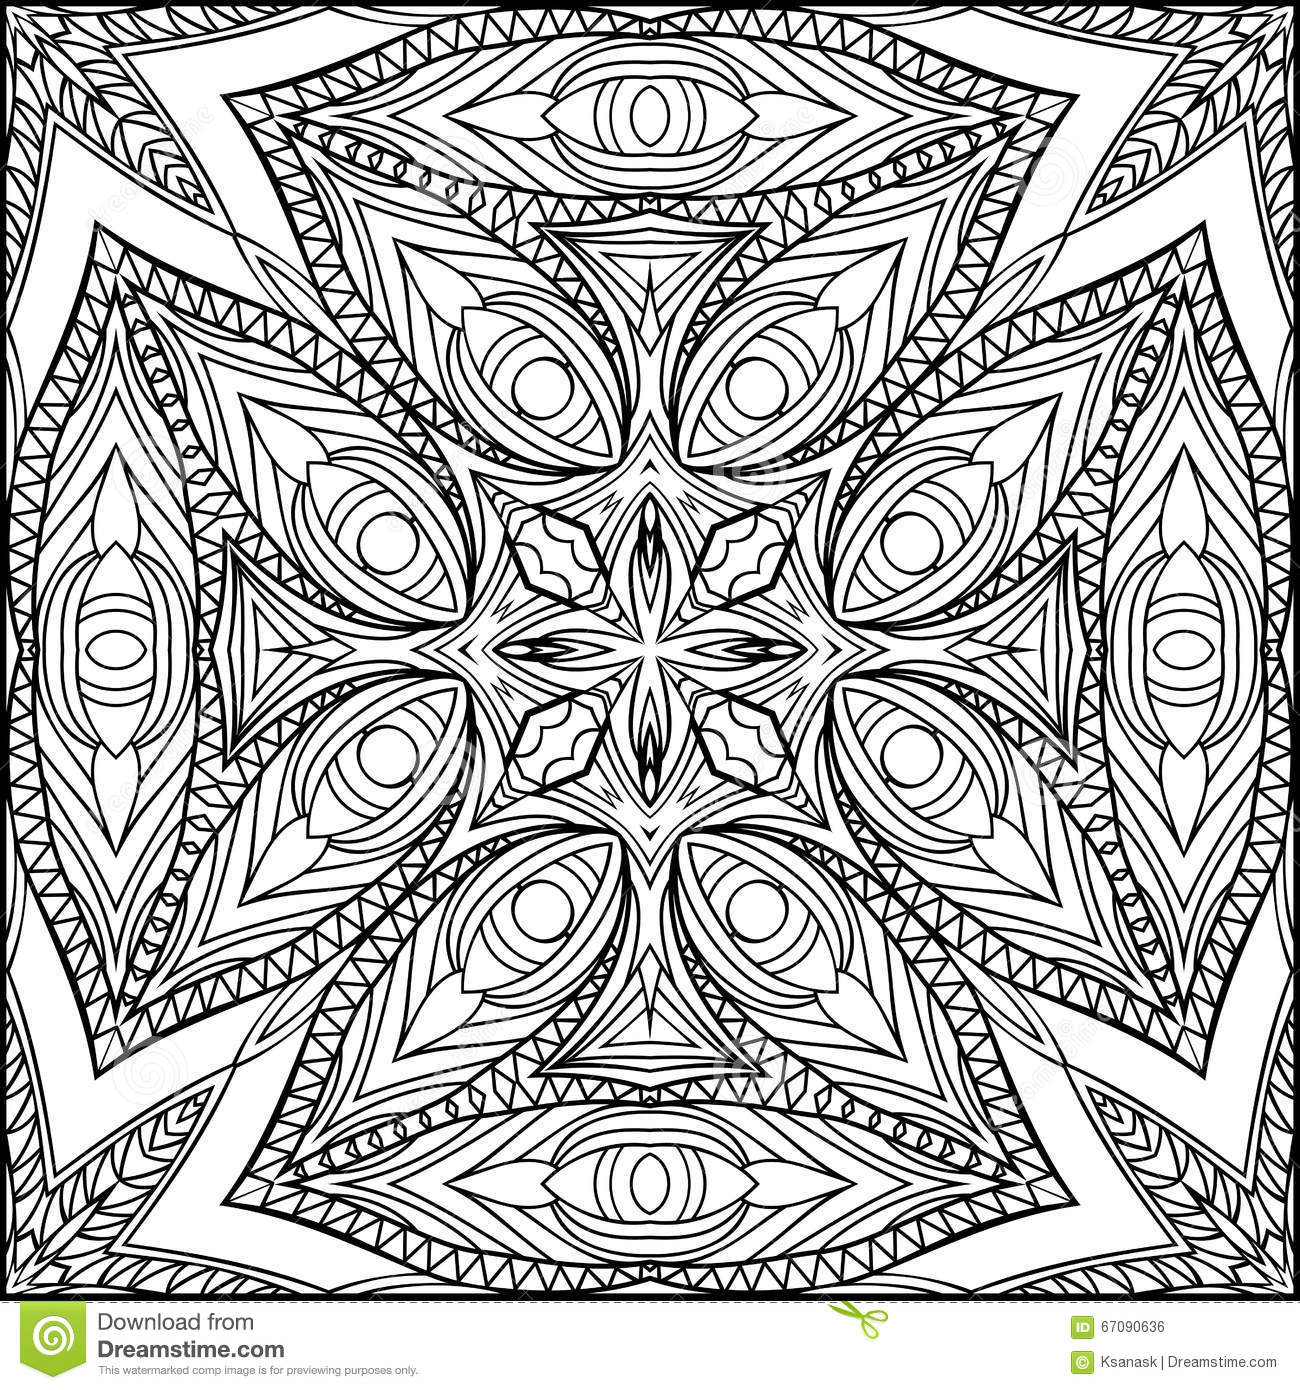 Abstract Cross Coloring Pages : Abstract egyptian cross zentangle style black and white